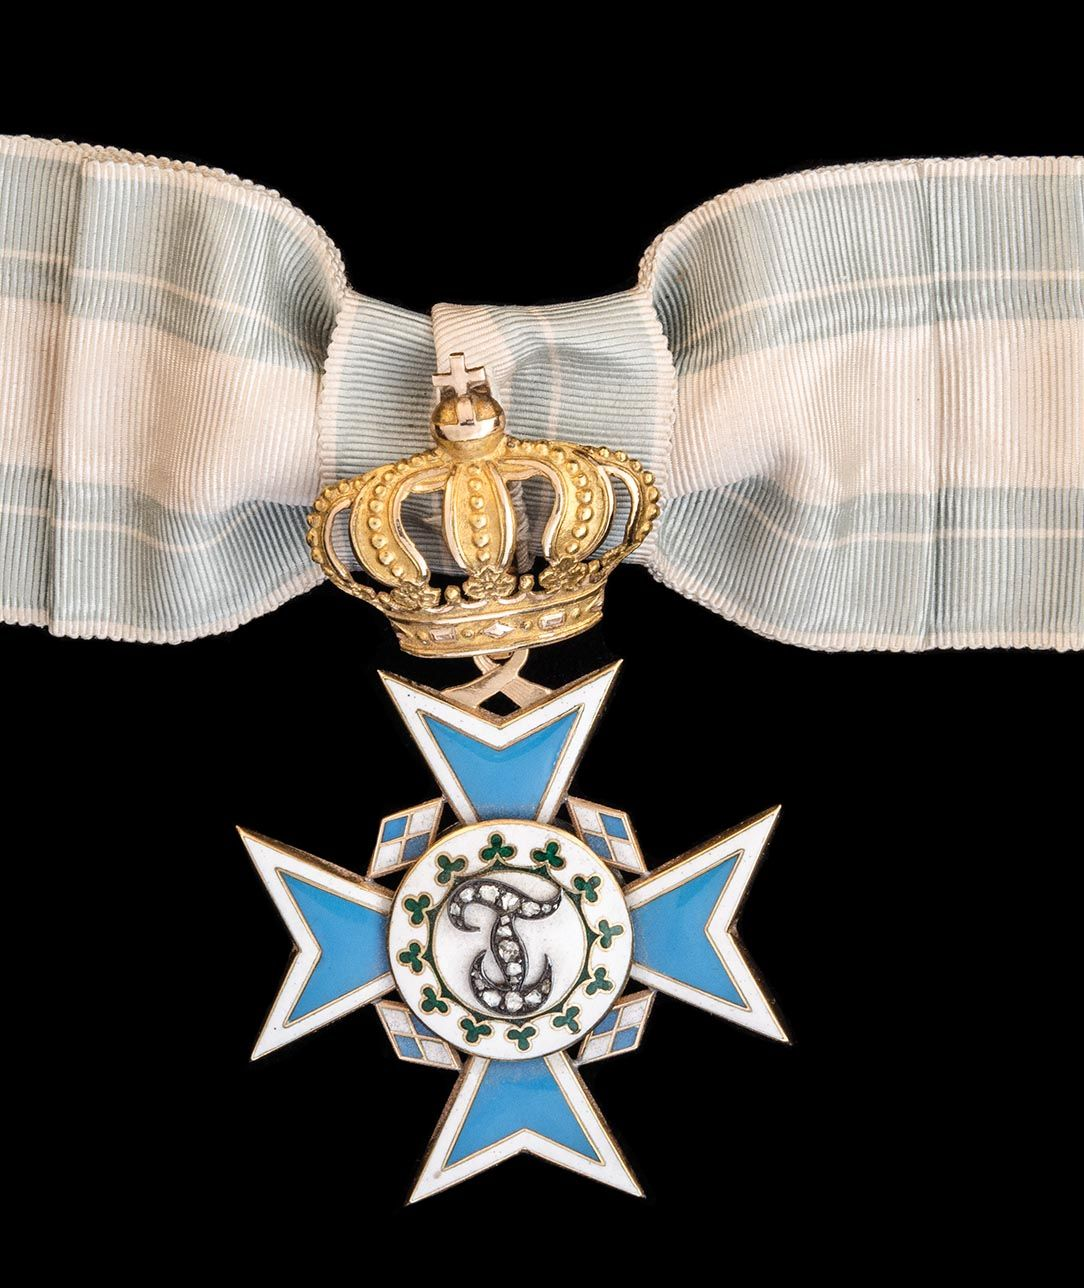 *Germany, Bavaria, Order of Theresa, badge for a Lady of